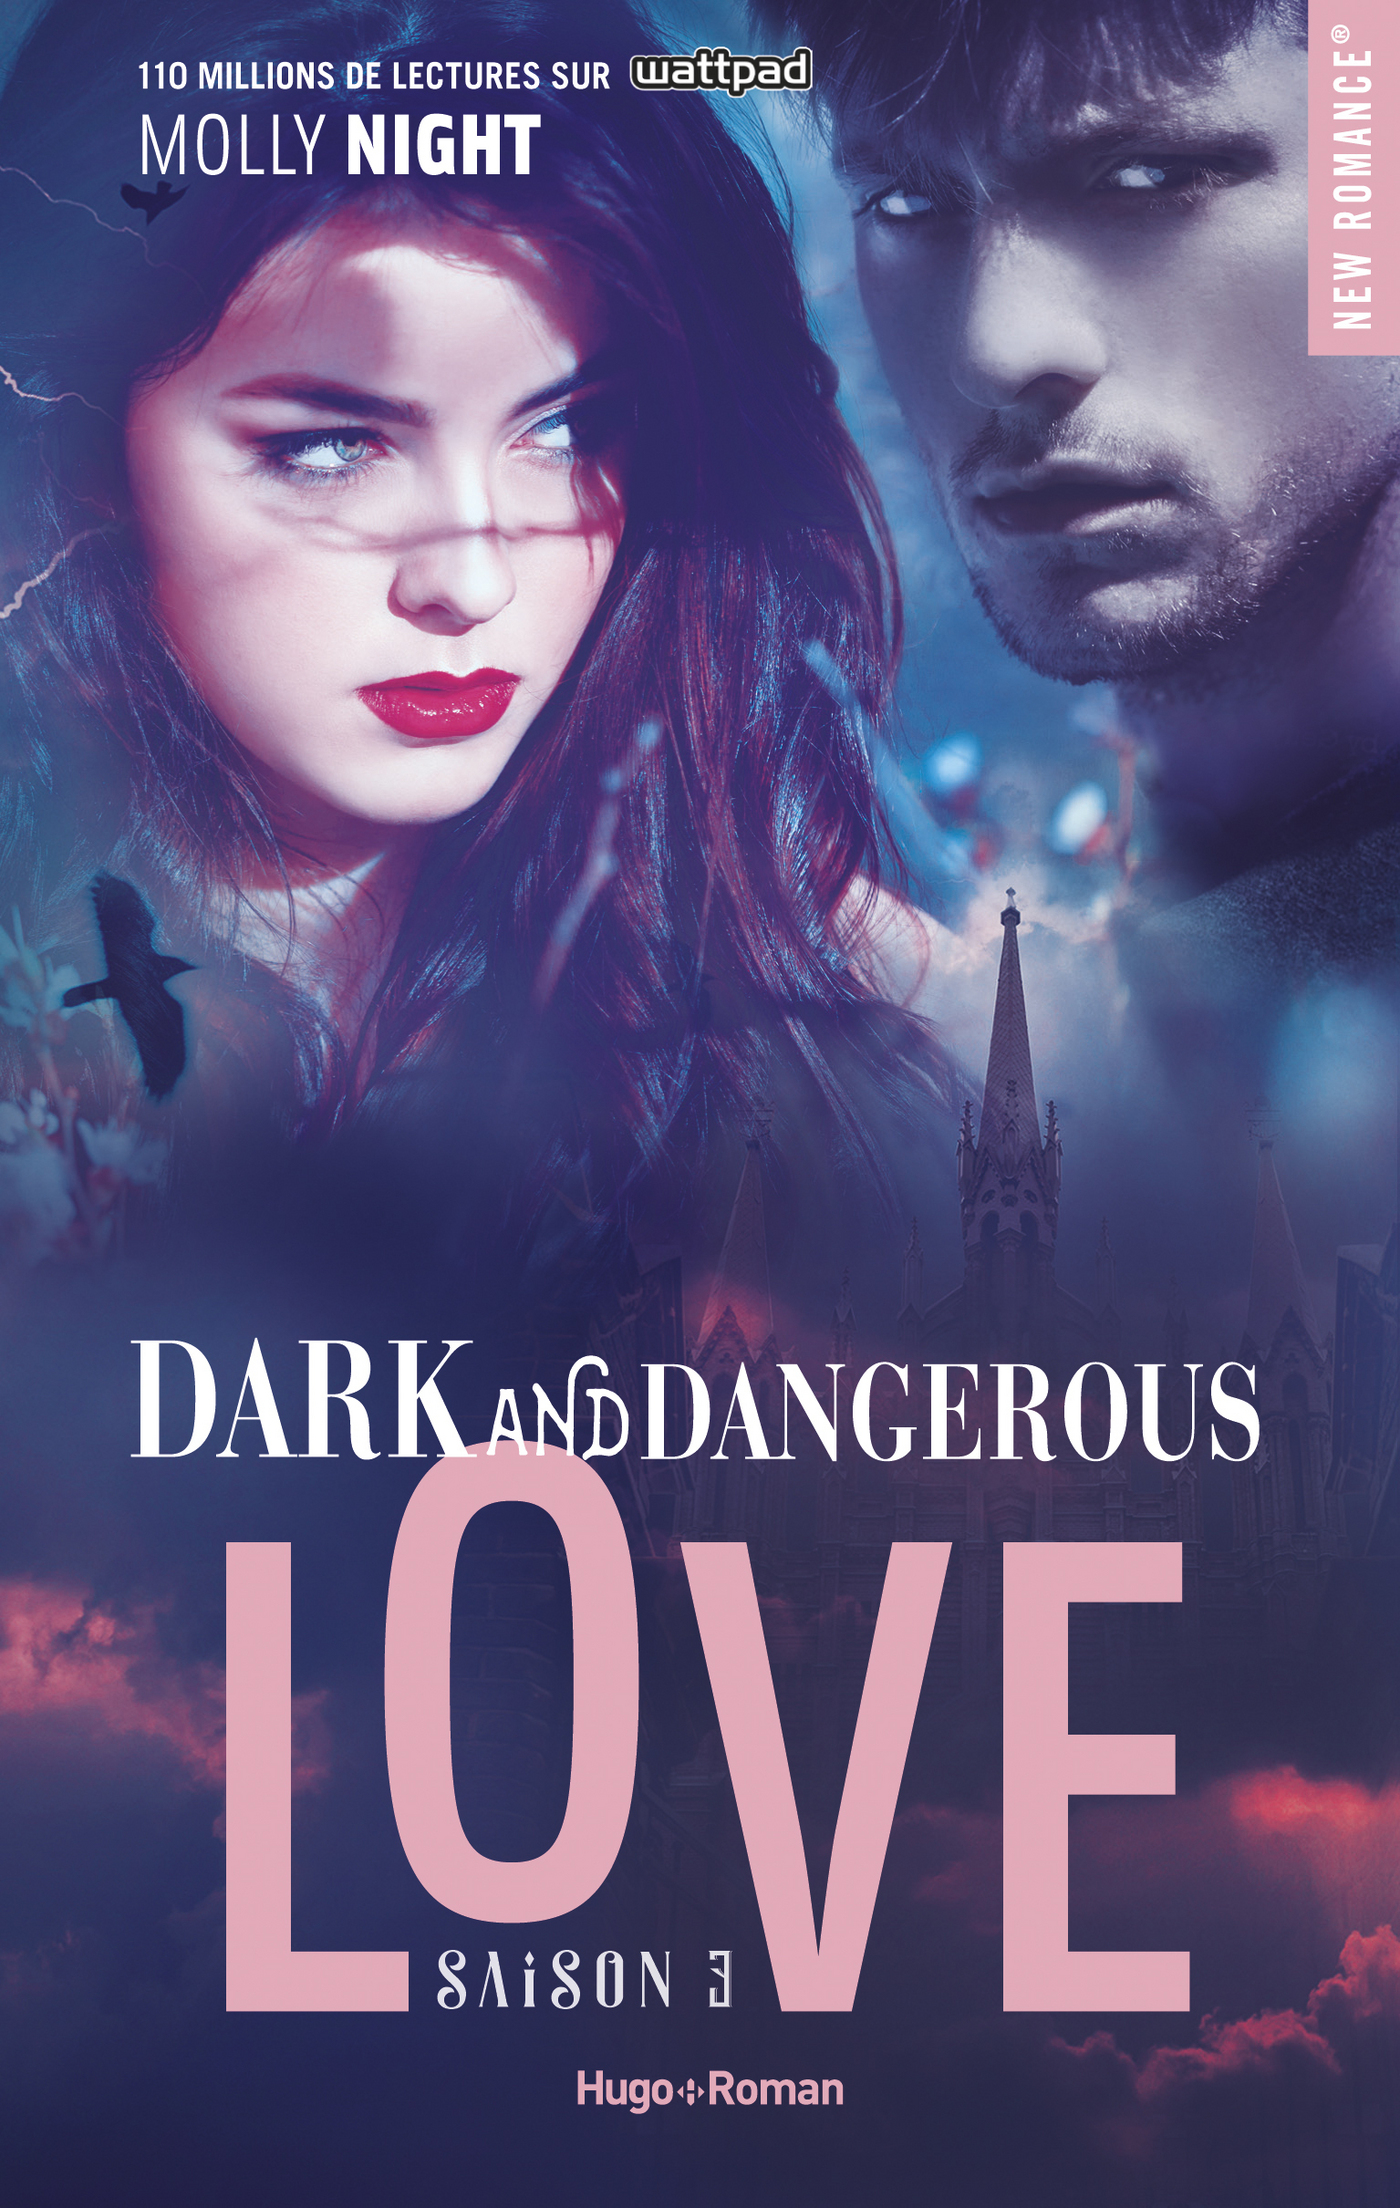 Dark and dangerous love - saison 3 -Extrait offert-